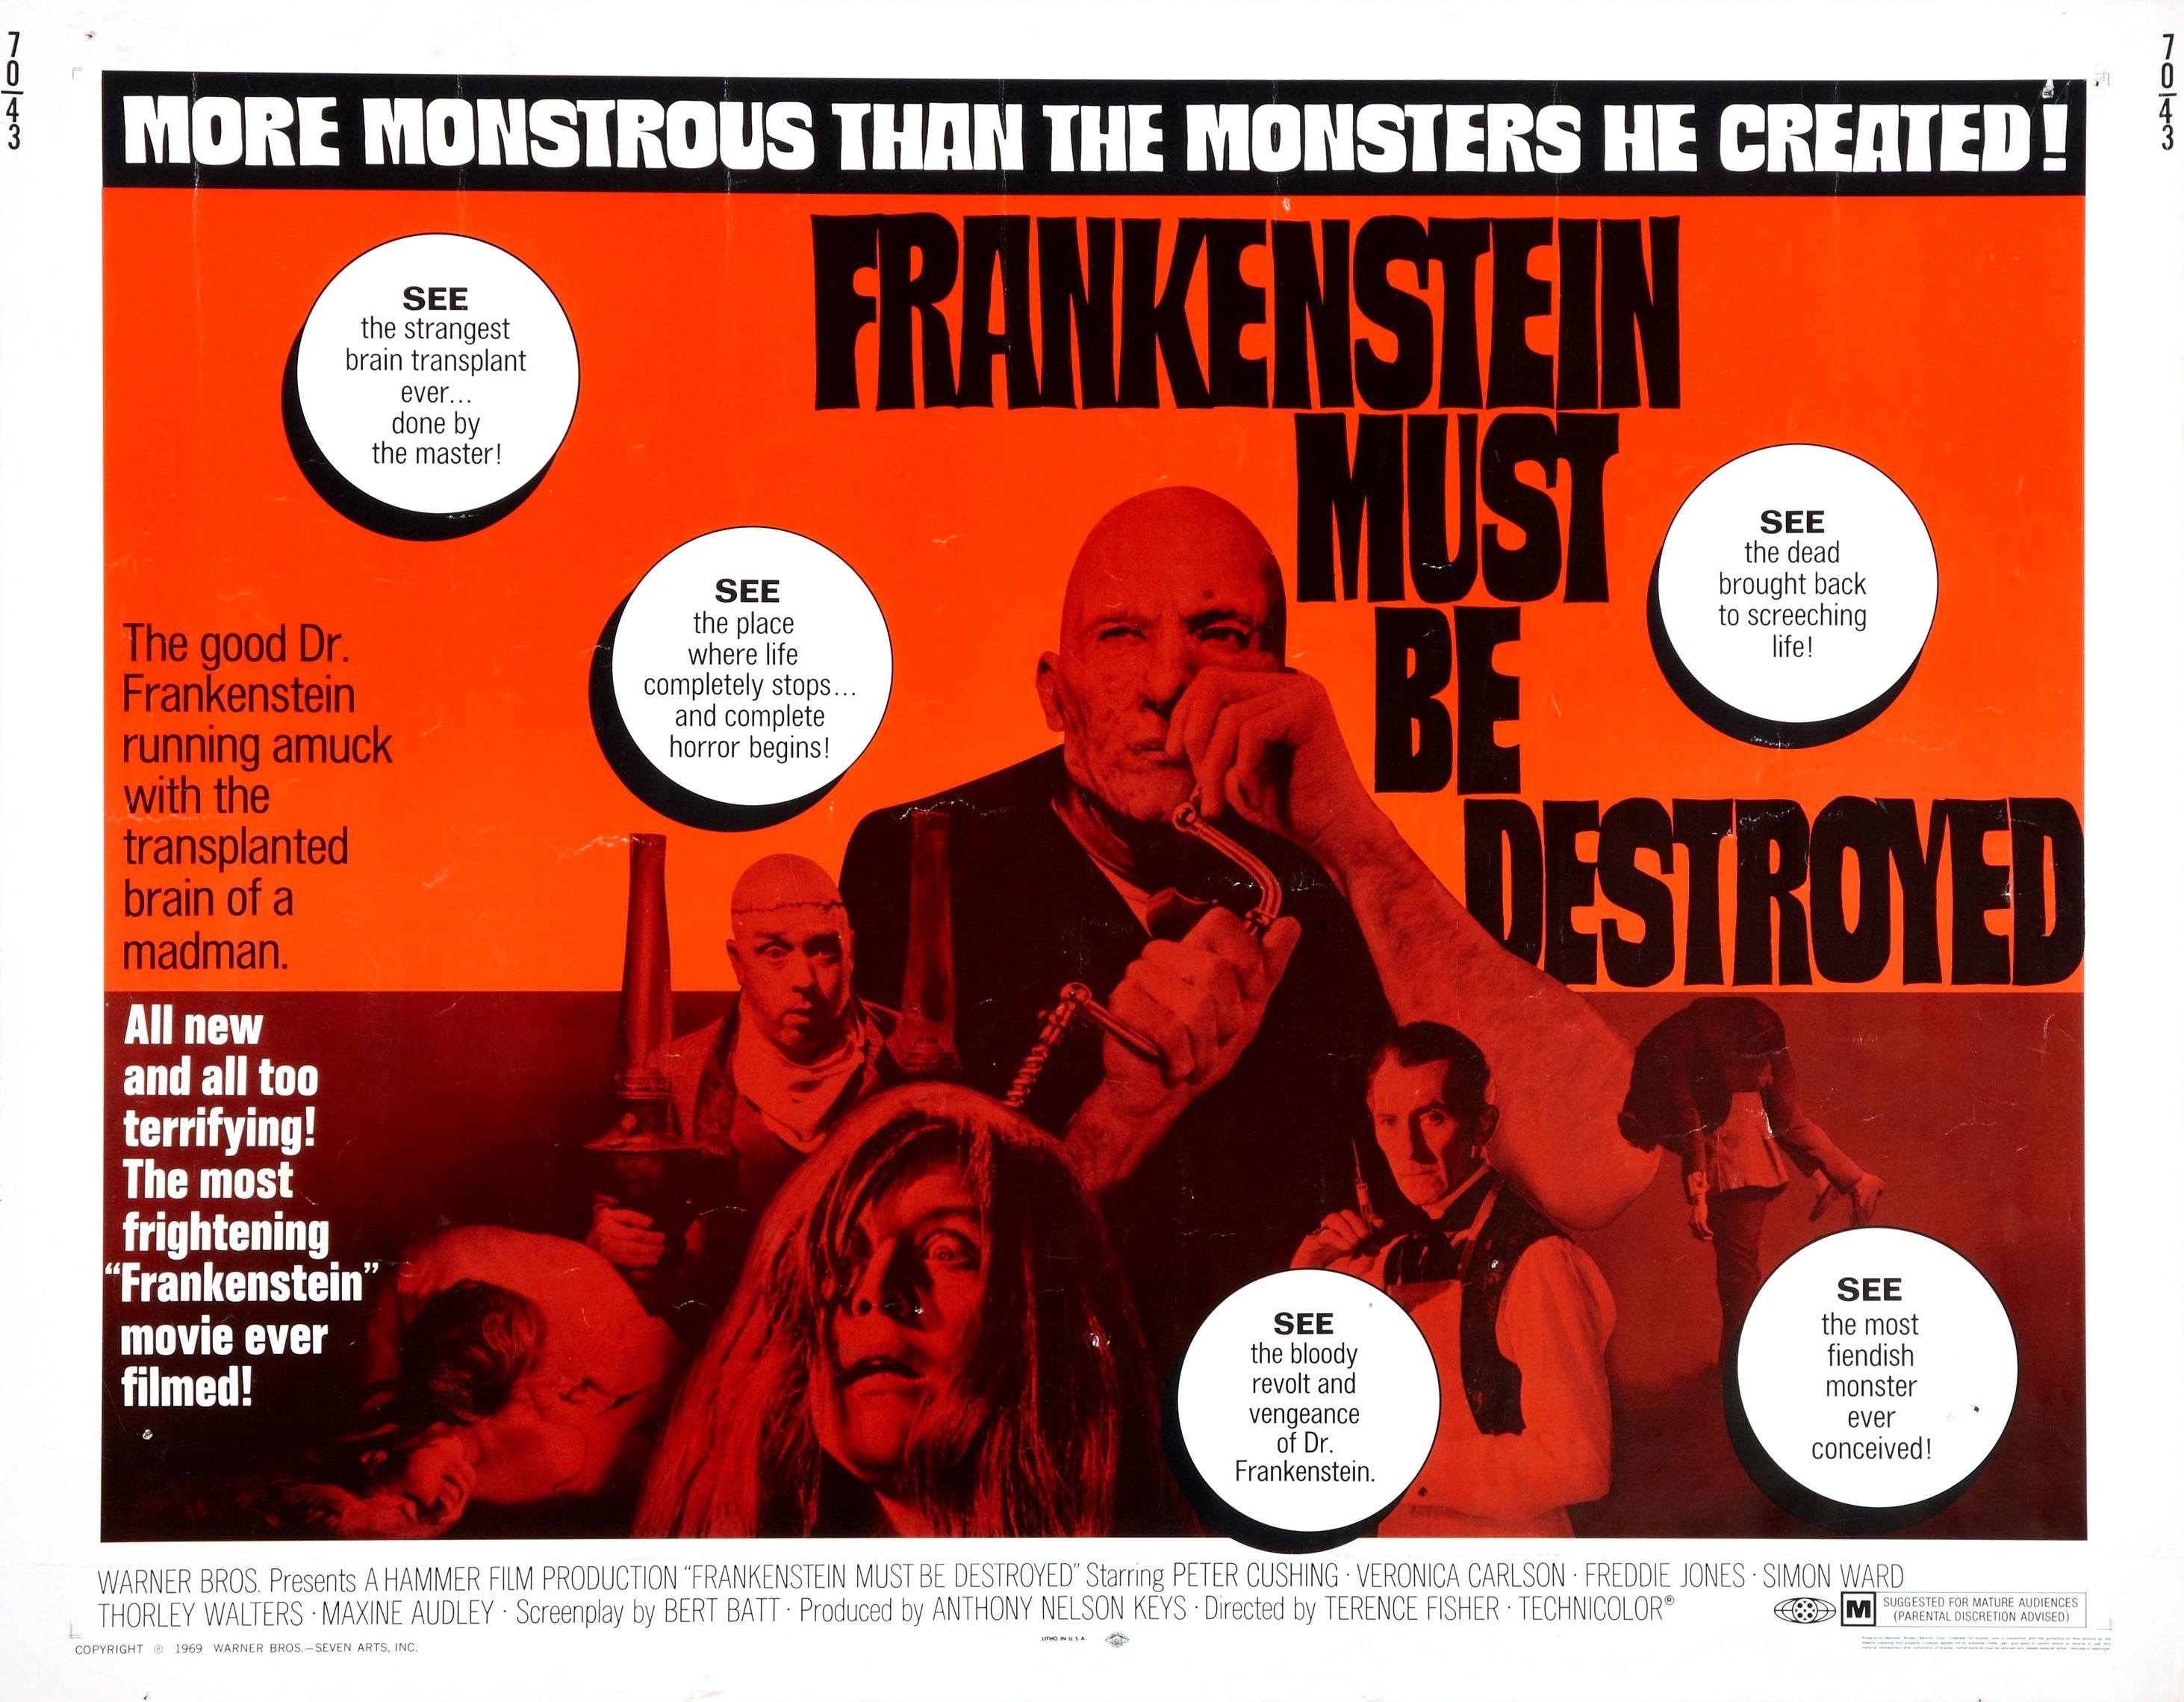 Movie Poster for &quotFrankenstein Must Be Destroyed&quot